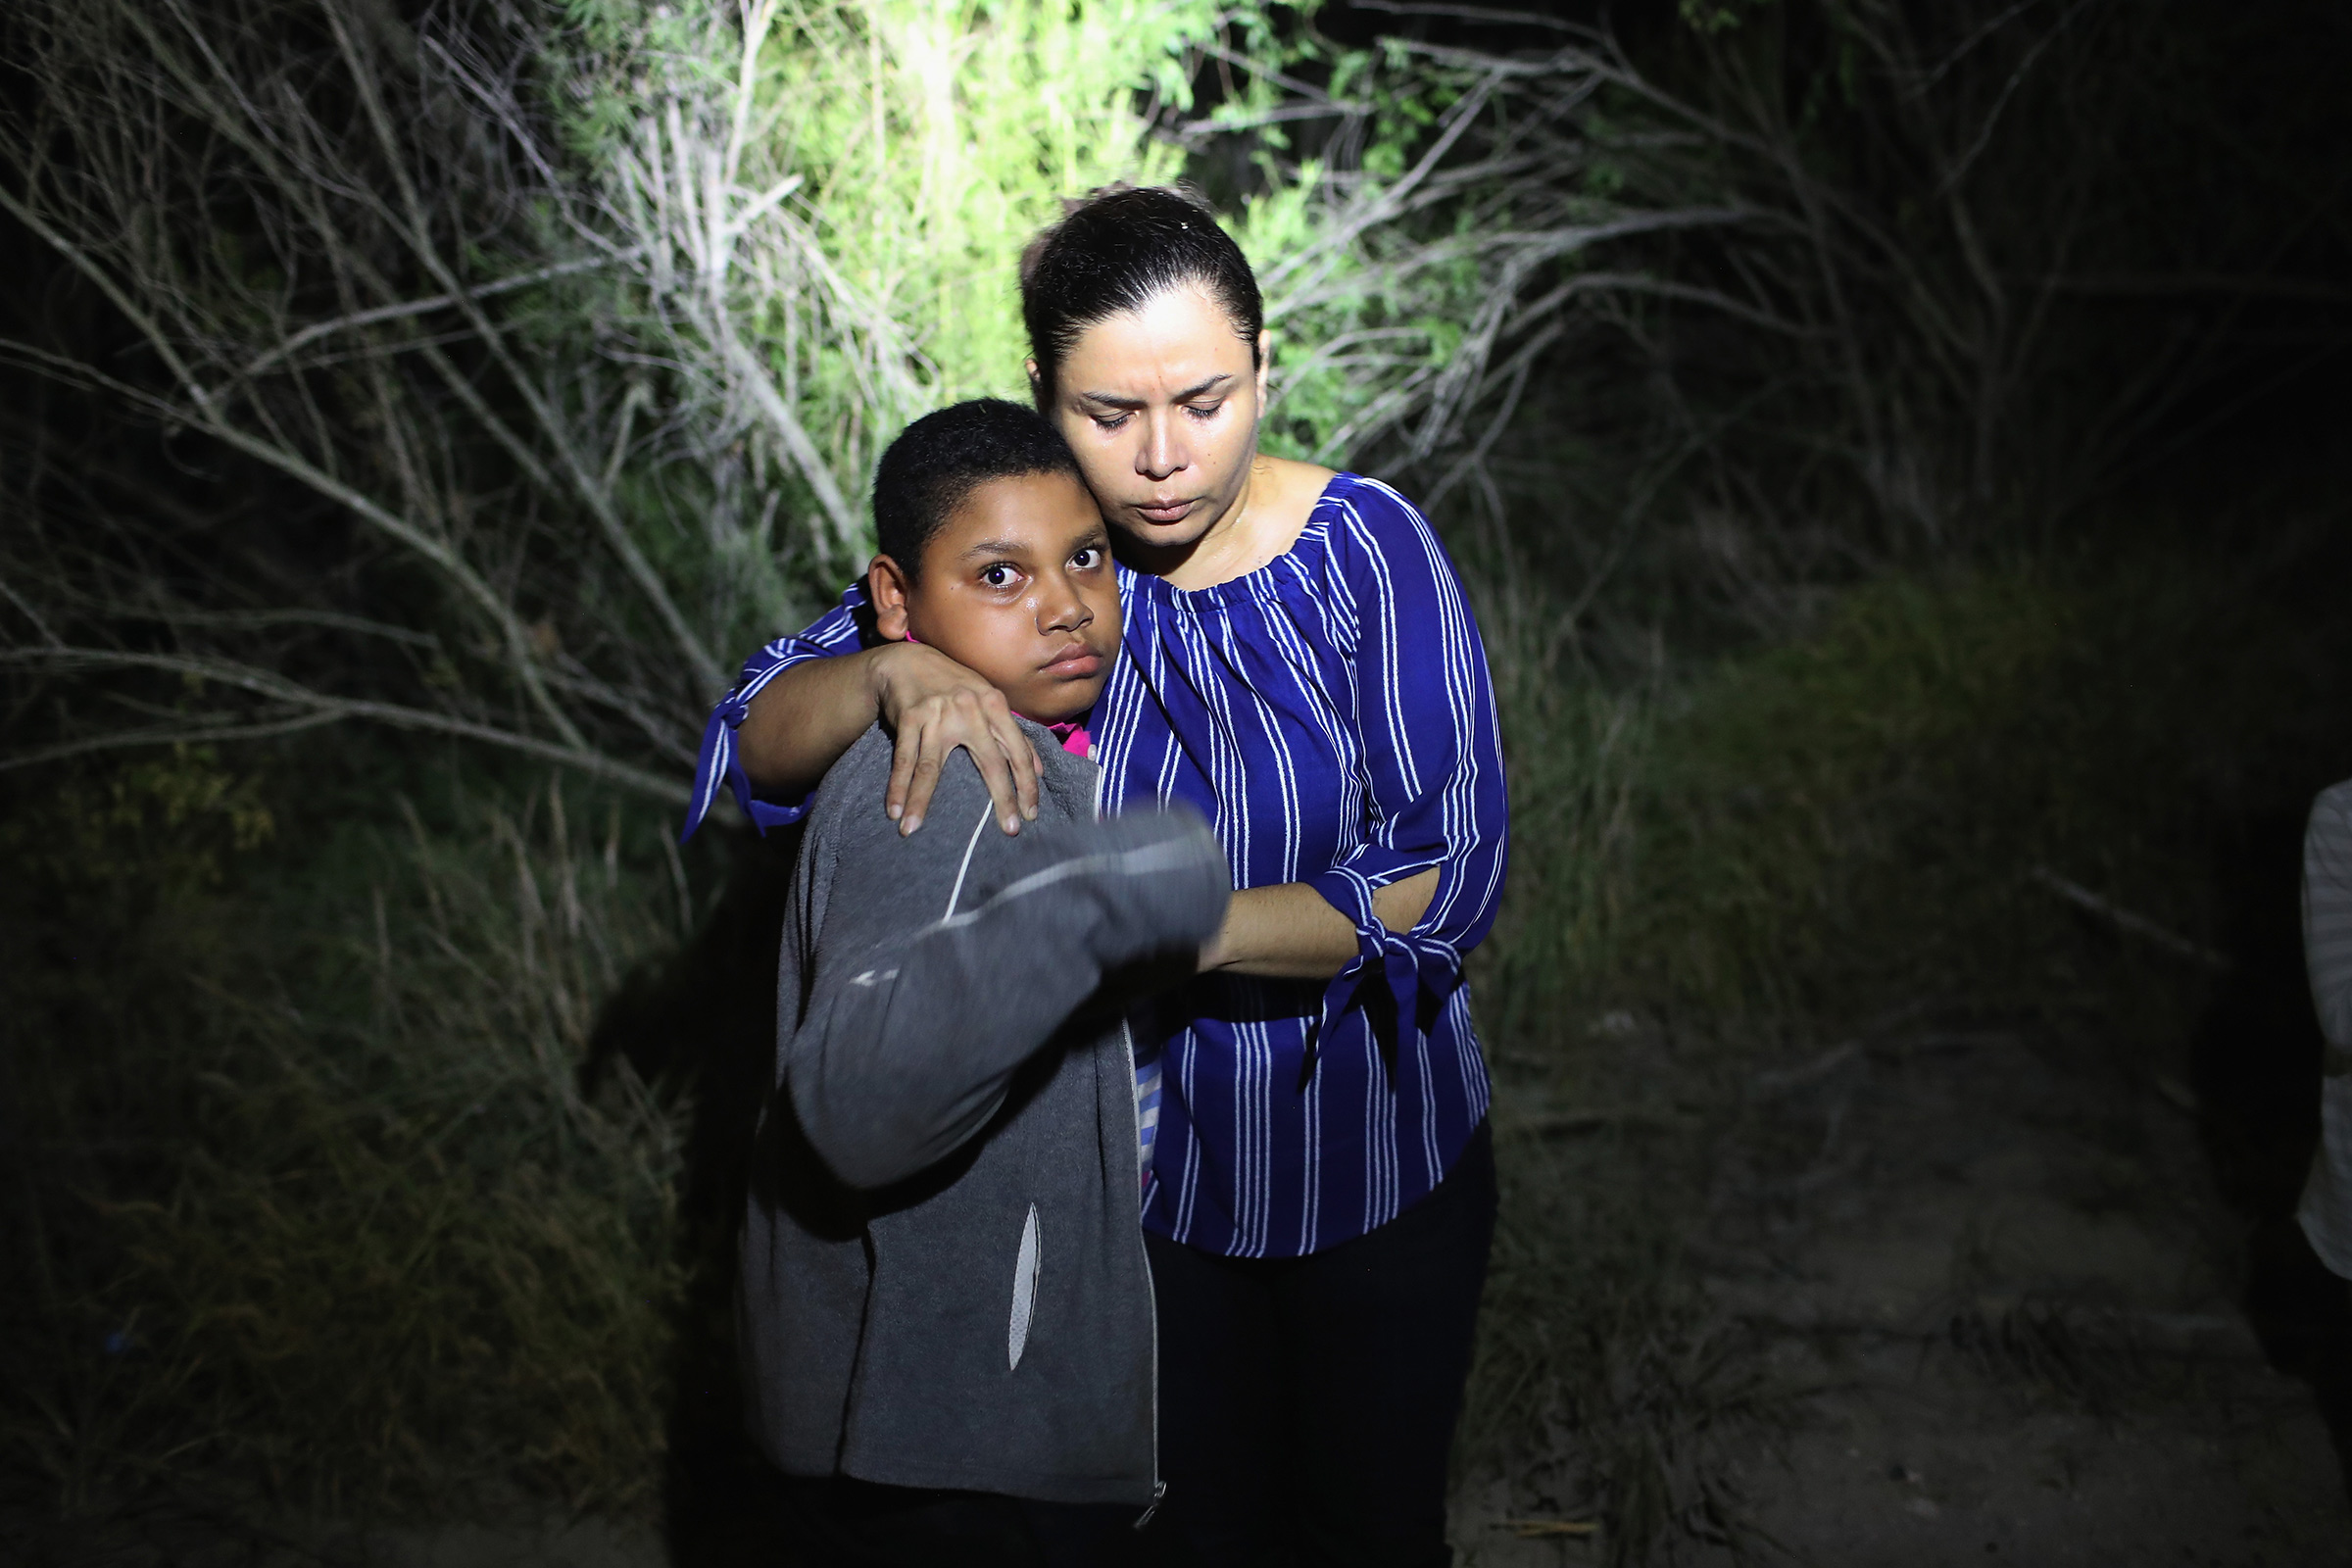 A U.S. Border Patrol spotlight shines on a mother and son from Honduras as they are found in the dark near the U.S.-Mexico border in McAllen, Texas on June 12, 2018. The asylum seekers were then detained by Border Patrol agents and then sent to a processing center for possible separation as part of the Trump Administration's  zero tolerance  policy towards undocumented immigrants.